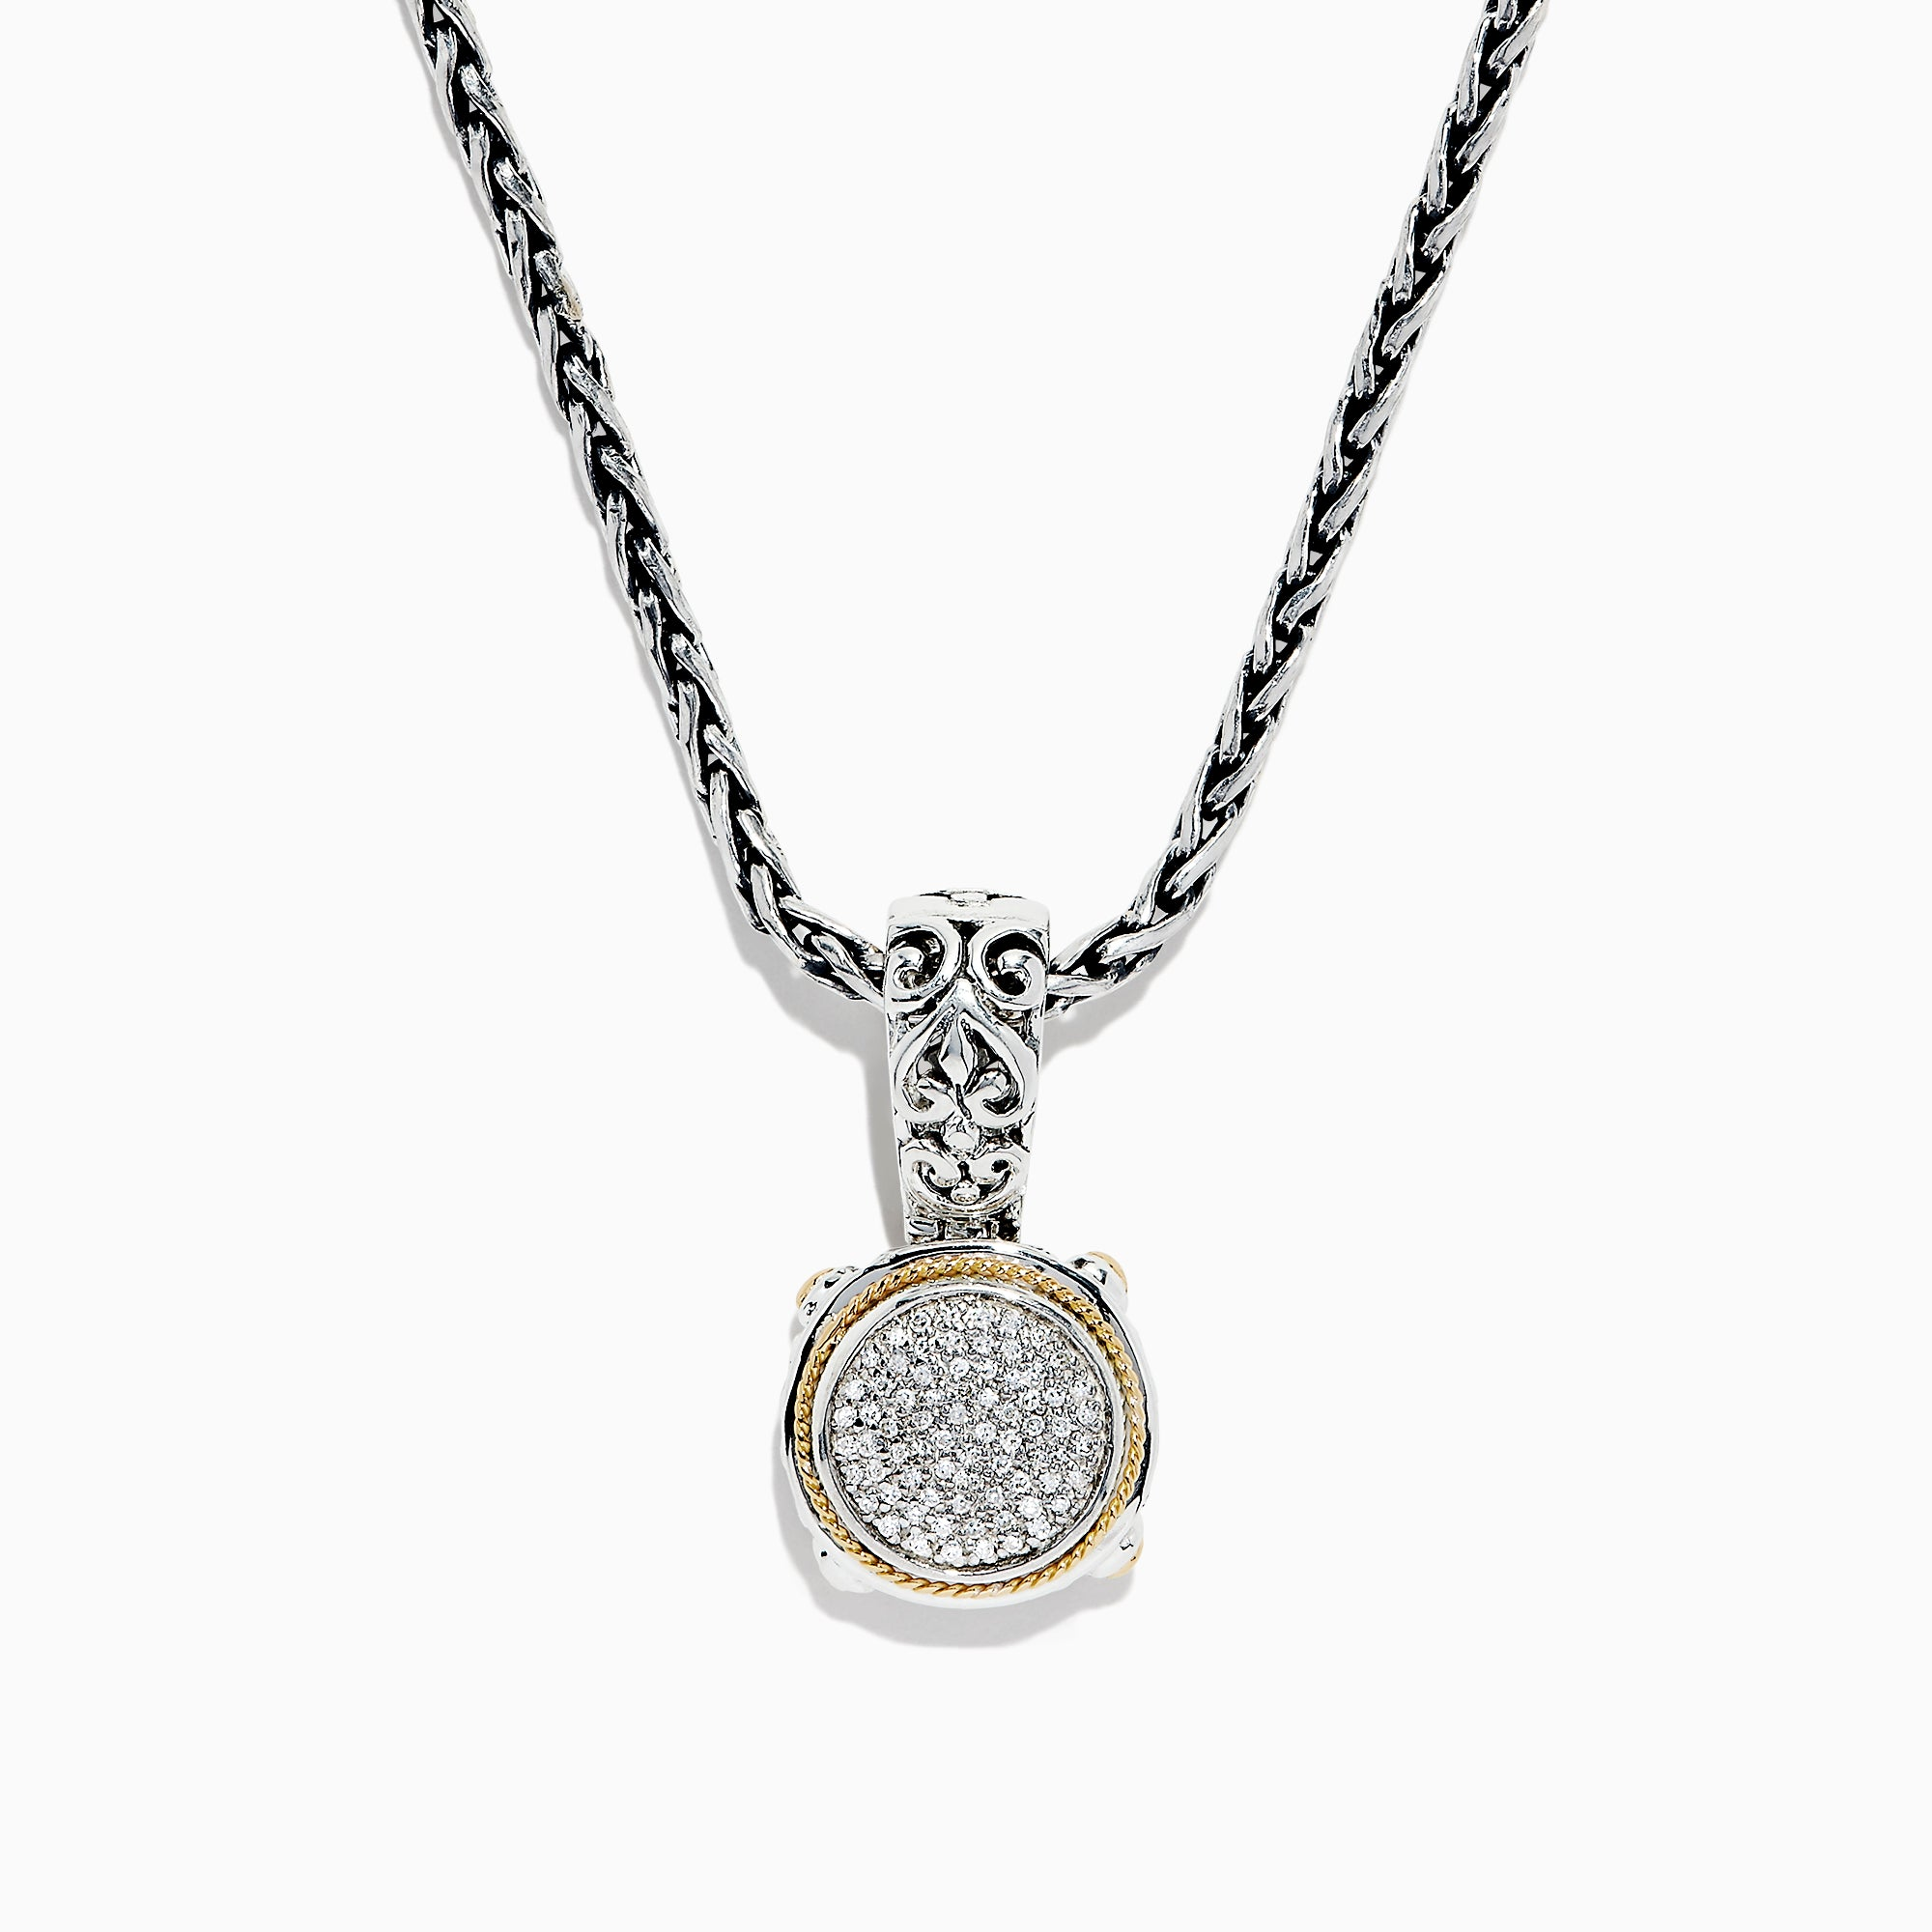 Effy 925 Sterling Silver & 18K Gold Diamond Pendant, 0.21 TCW